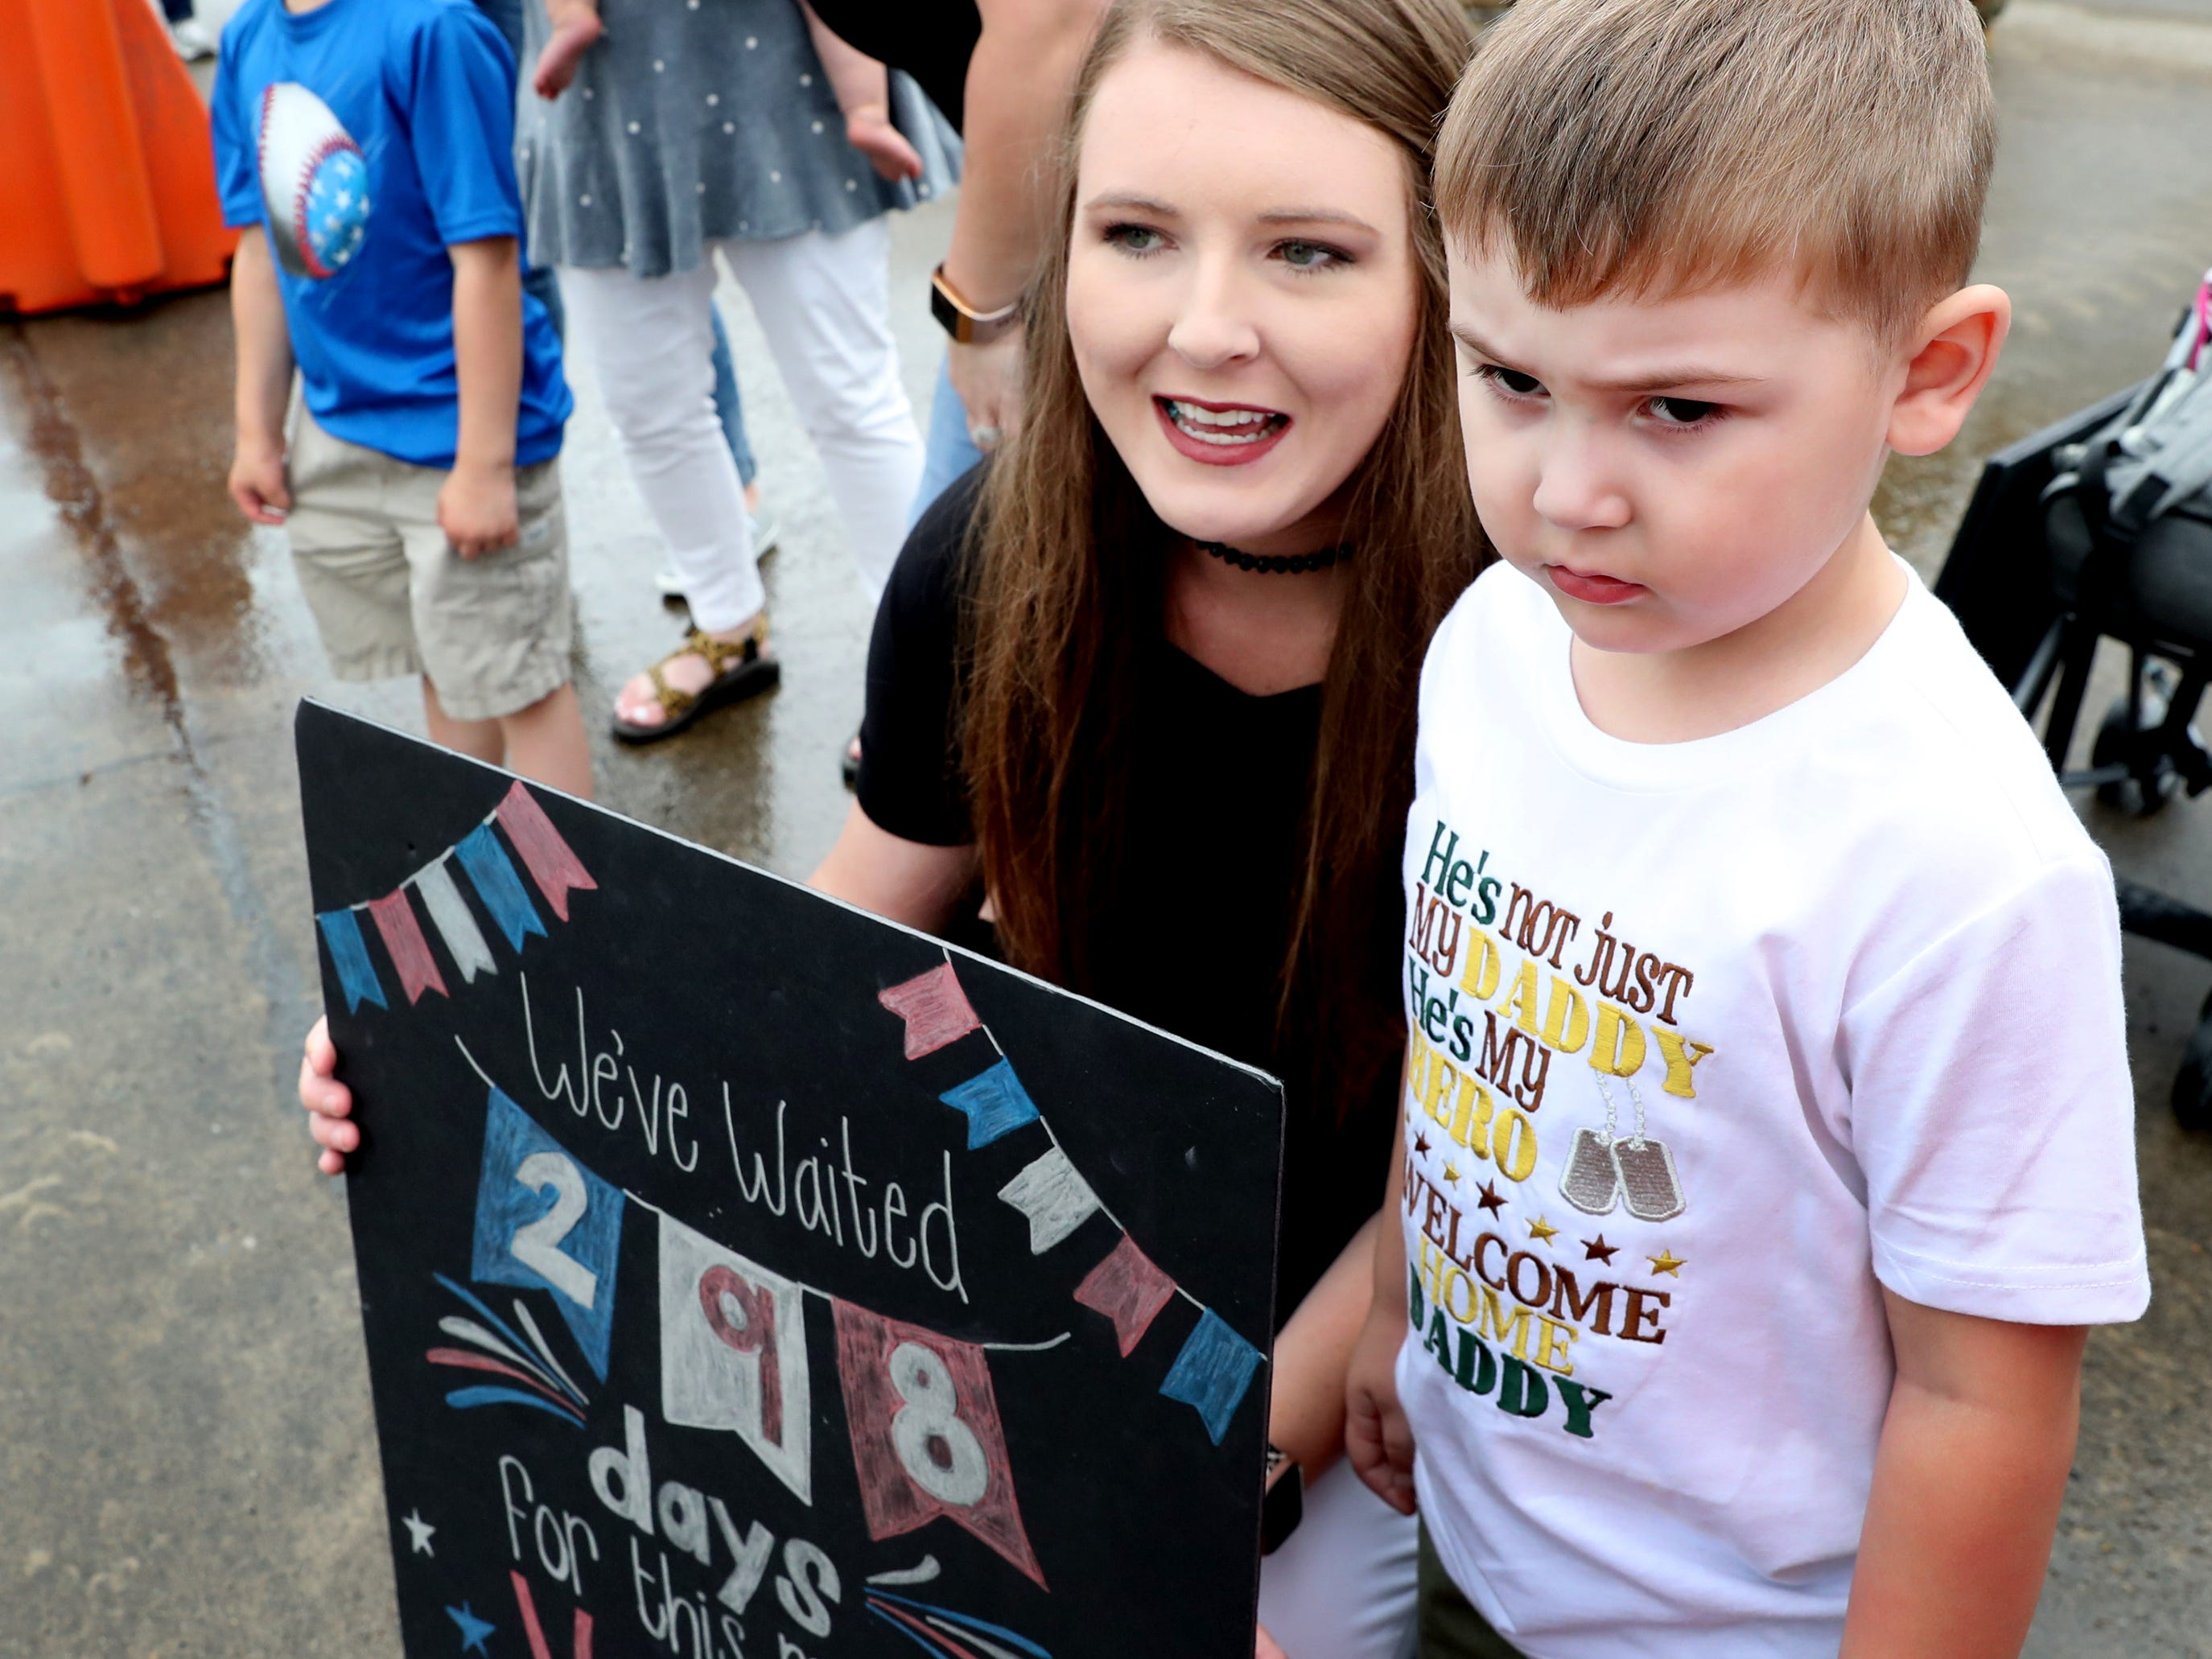 Kristin Chipman and her son Camden Chipman wait for her husband and his father, Sgt. Cody Chipman with the 278th ACR, to return to the Volunteer Training Site in Smyrna, from a 9 month overseas deployment on Thursday, May 9, 2019.